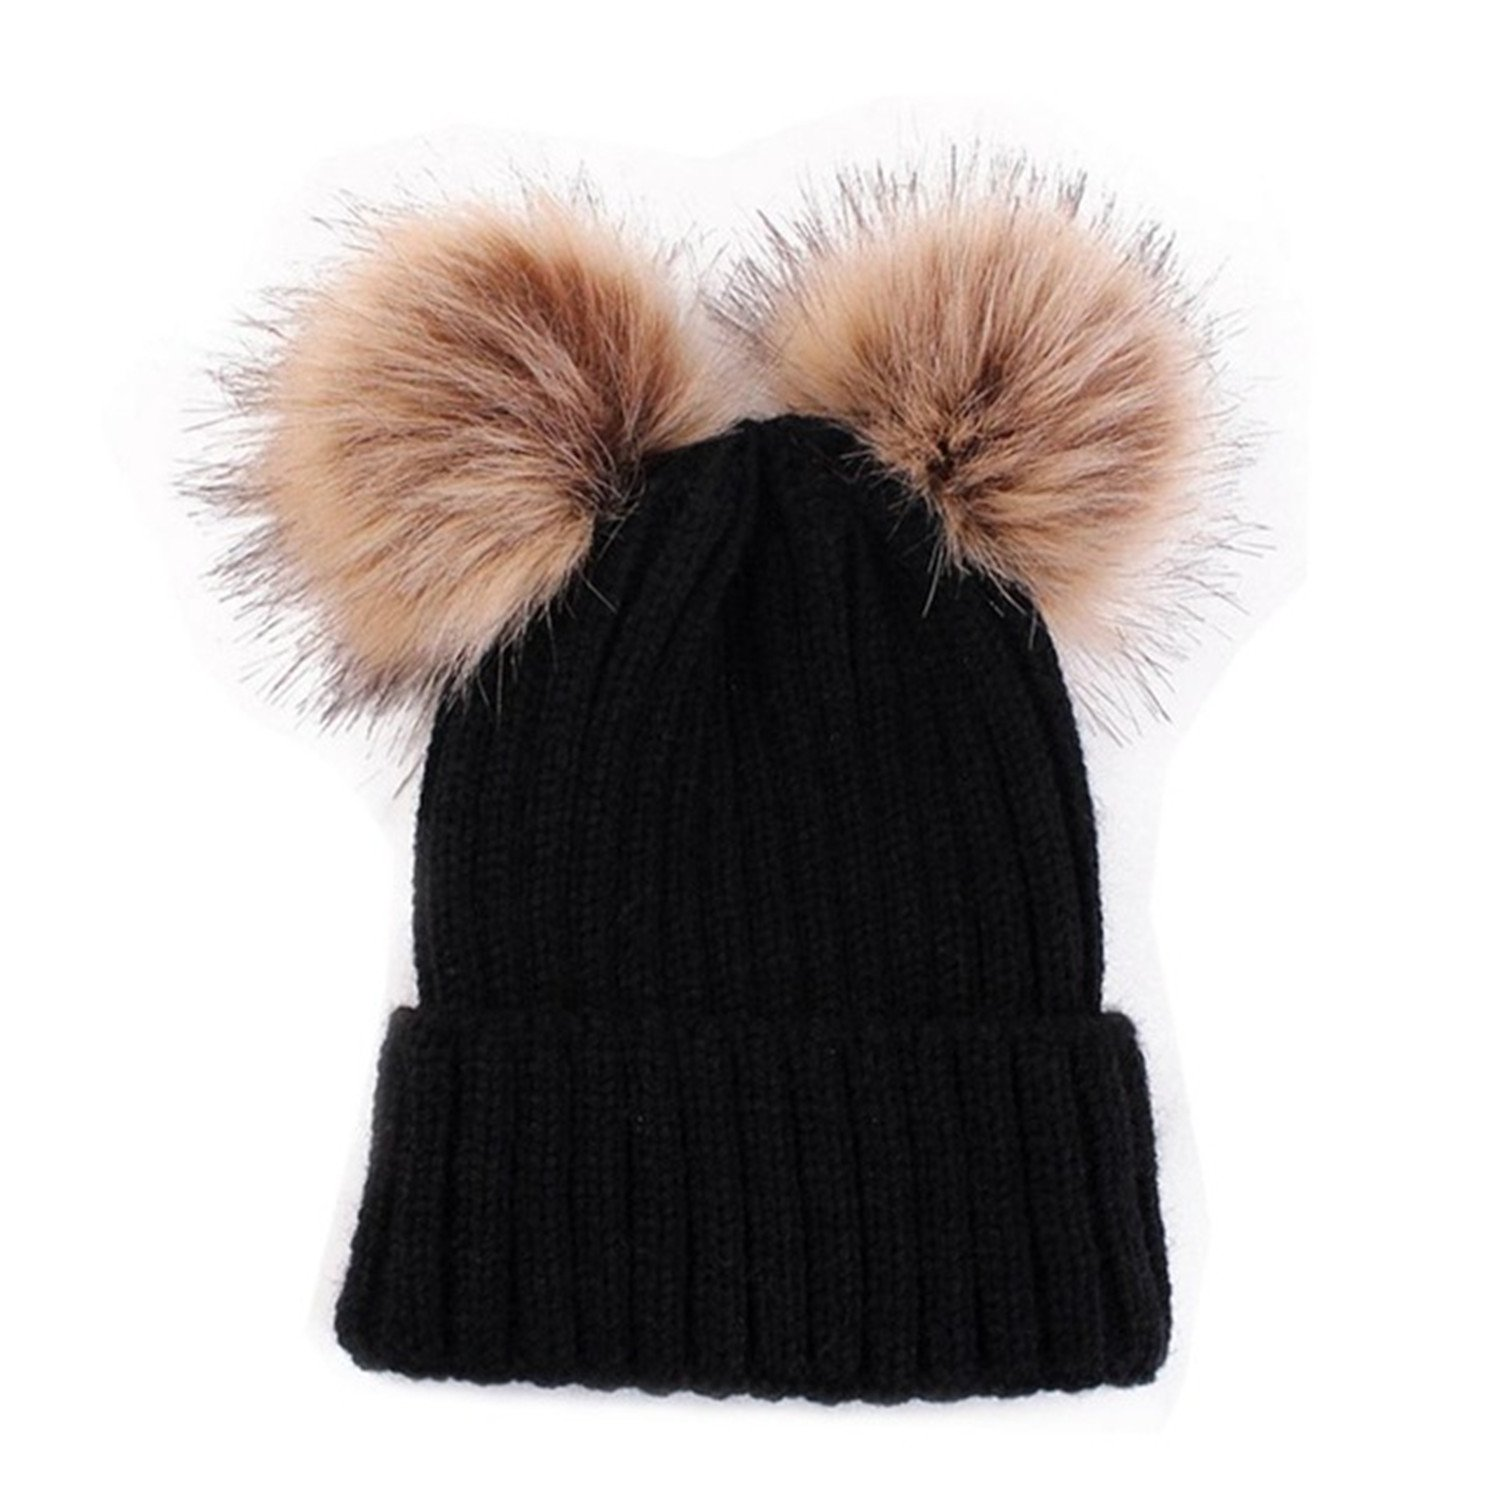 930b8d0086a HMILYDYK Fashion Knitted Ribbed Winter Beanie Bobble Hat Soft Twin Faux Fur  Pom Pom Ski Beret Cap for Women  Amazon.ca  Sports   Outdoors